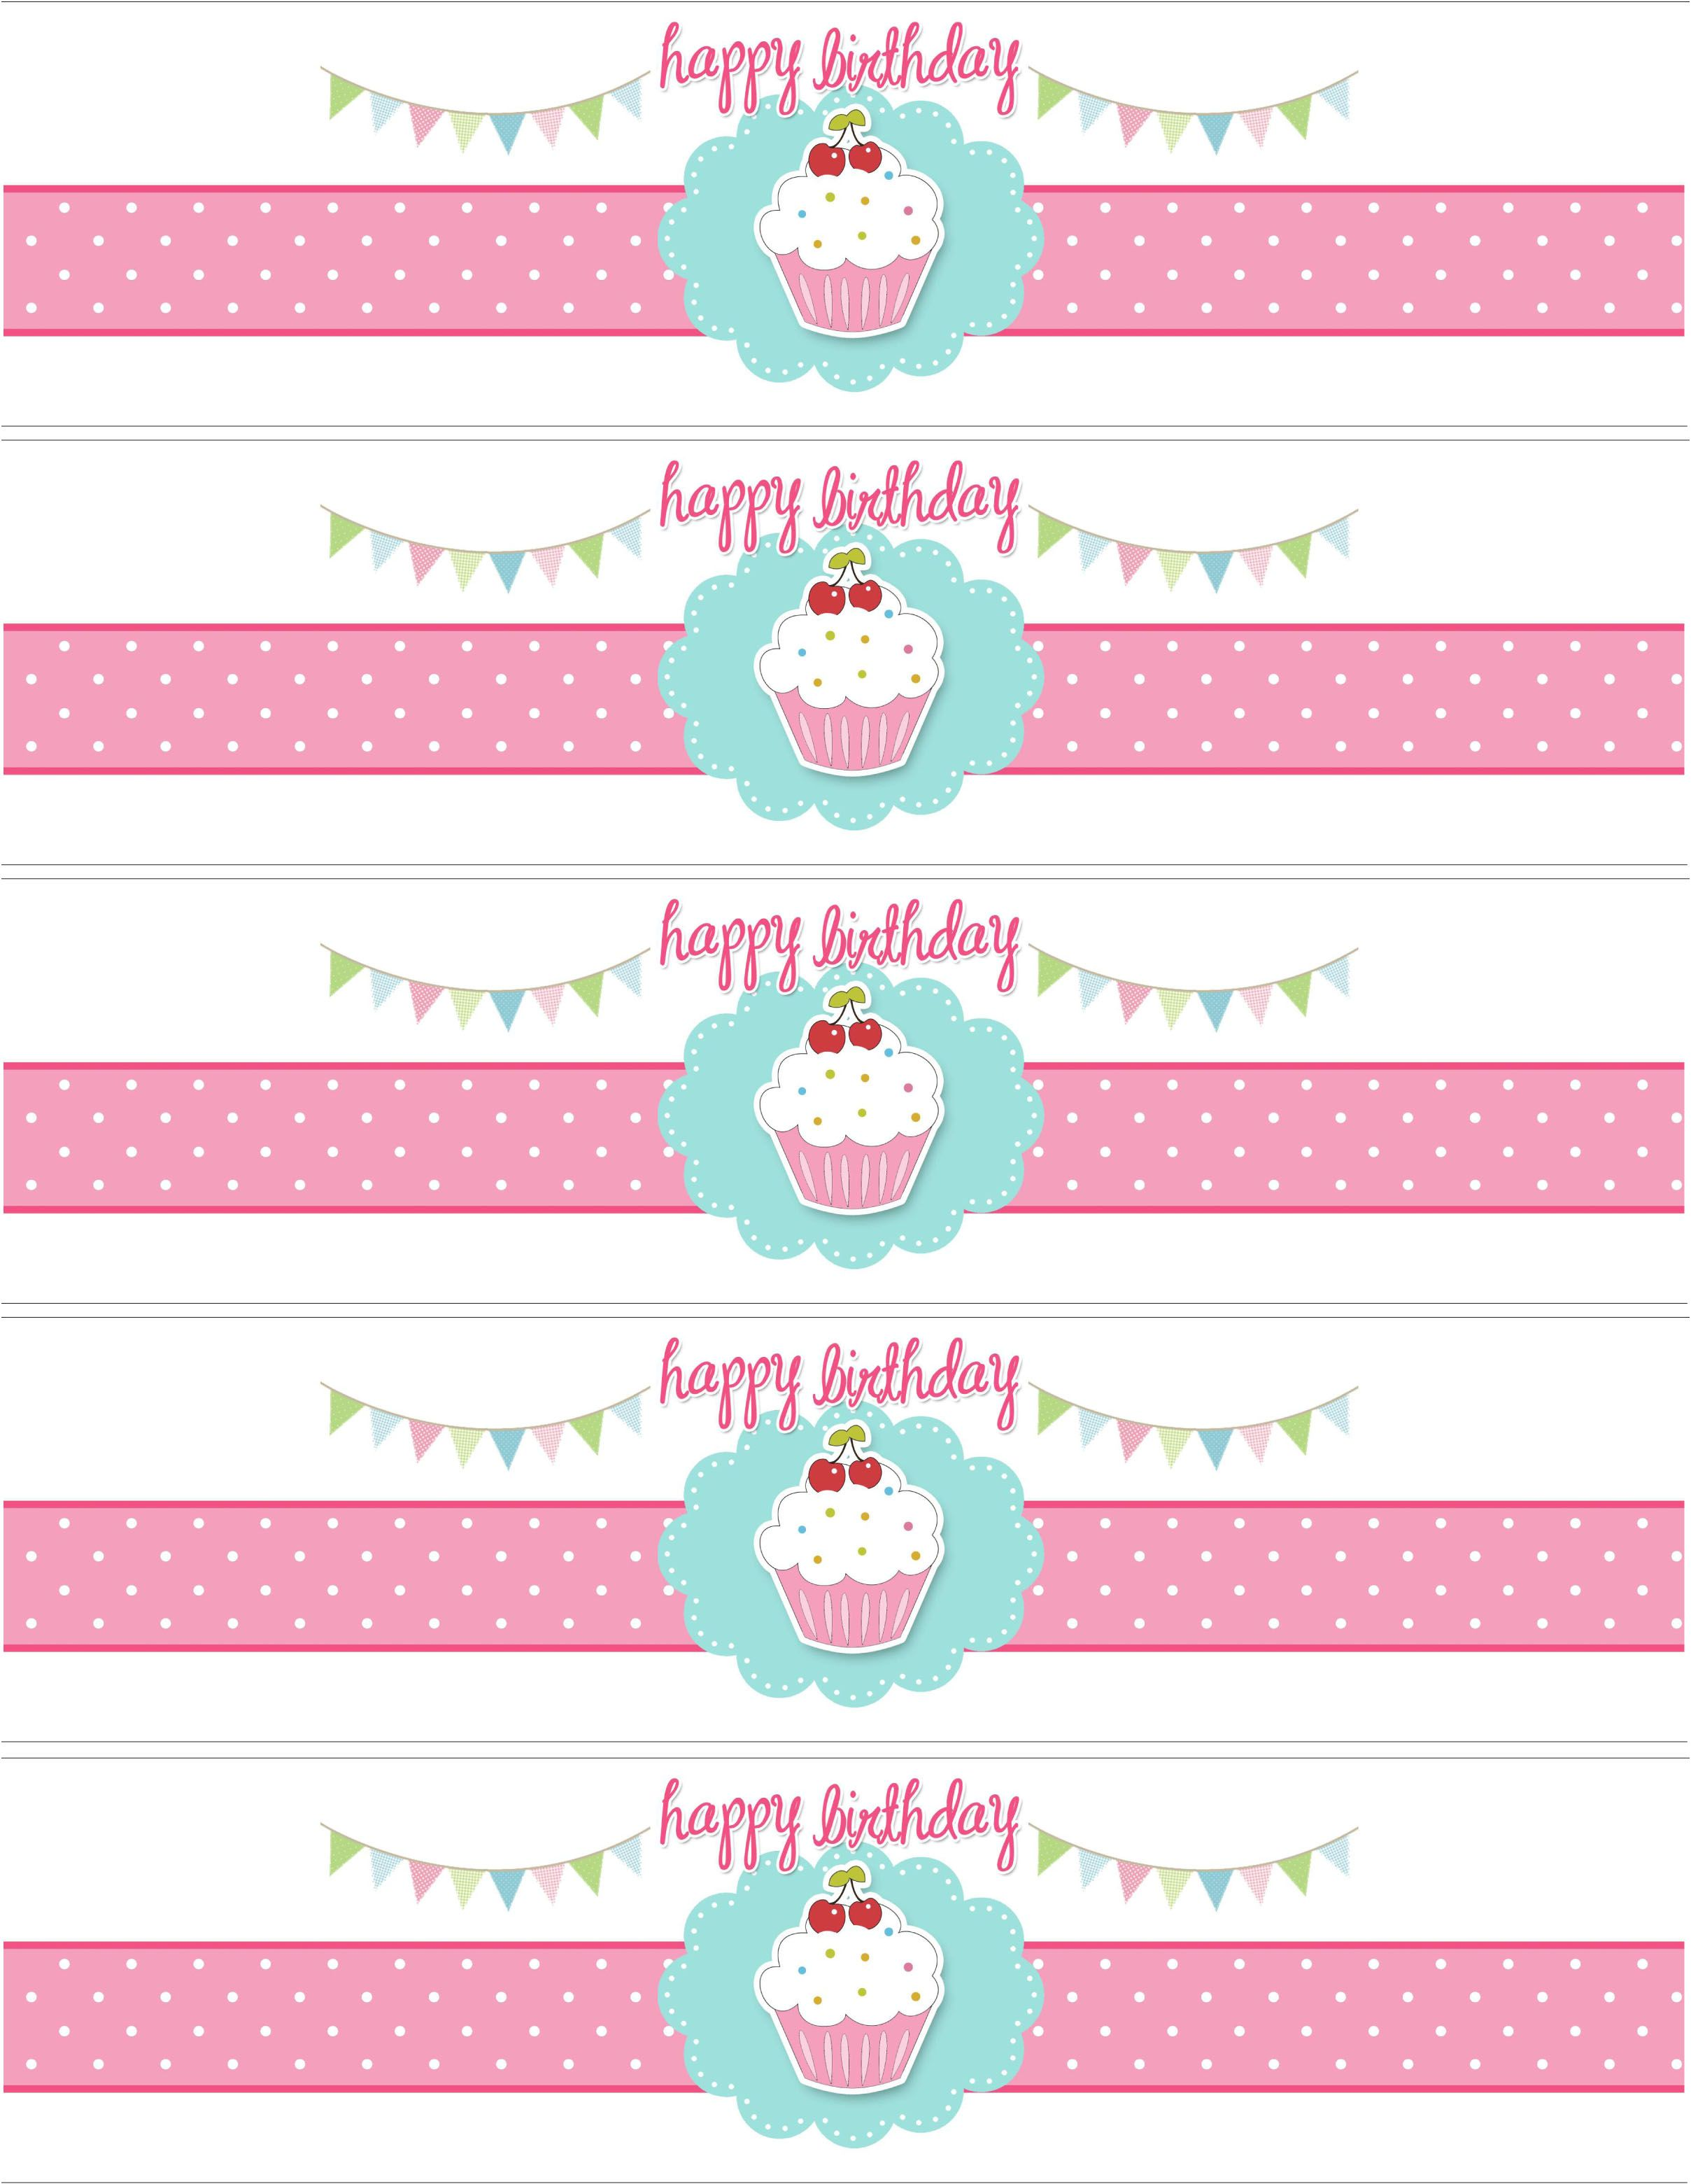 birthday labels template free ; f7848896c890c91f6c0e022ba69b9b6a